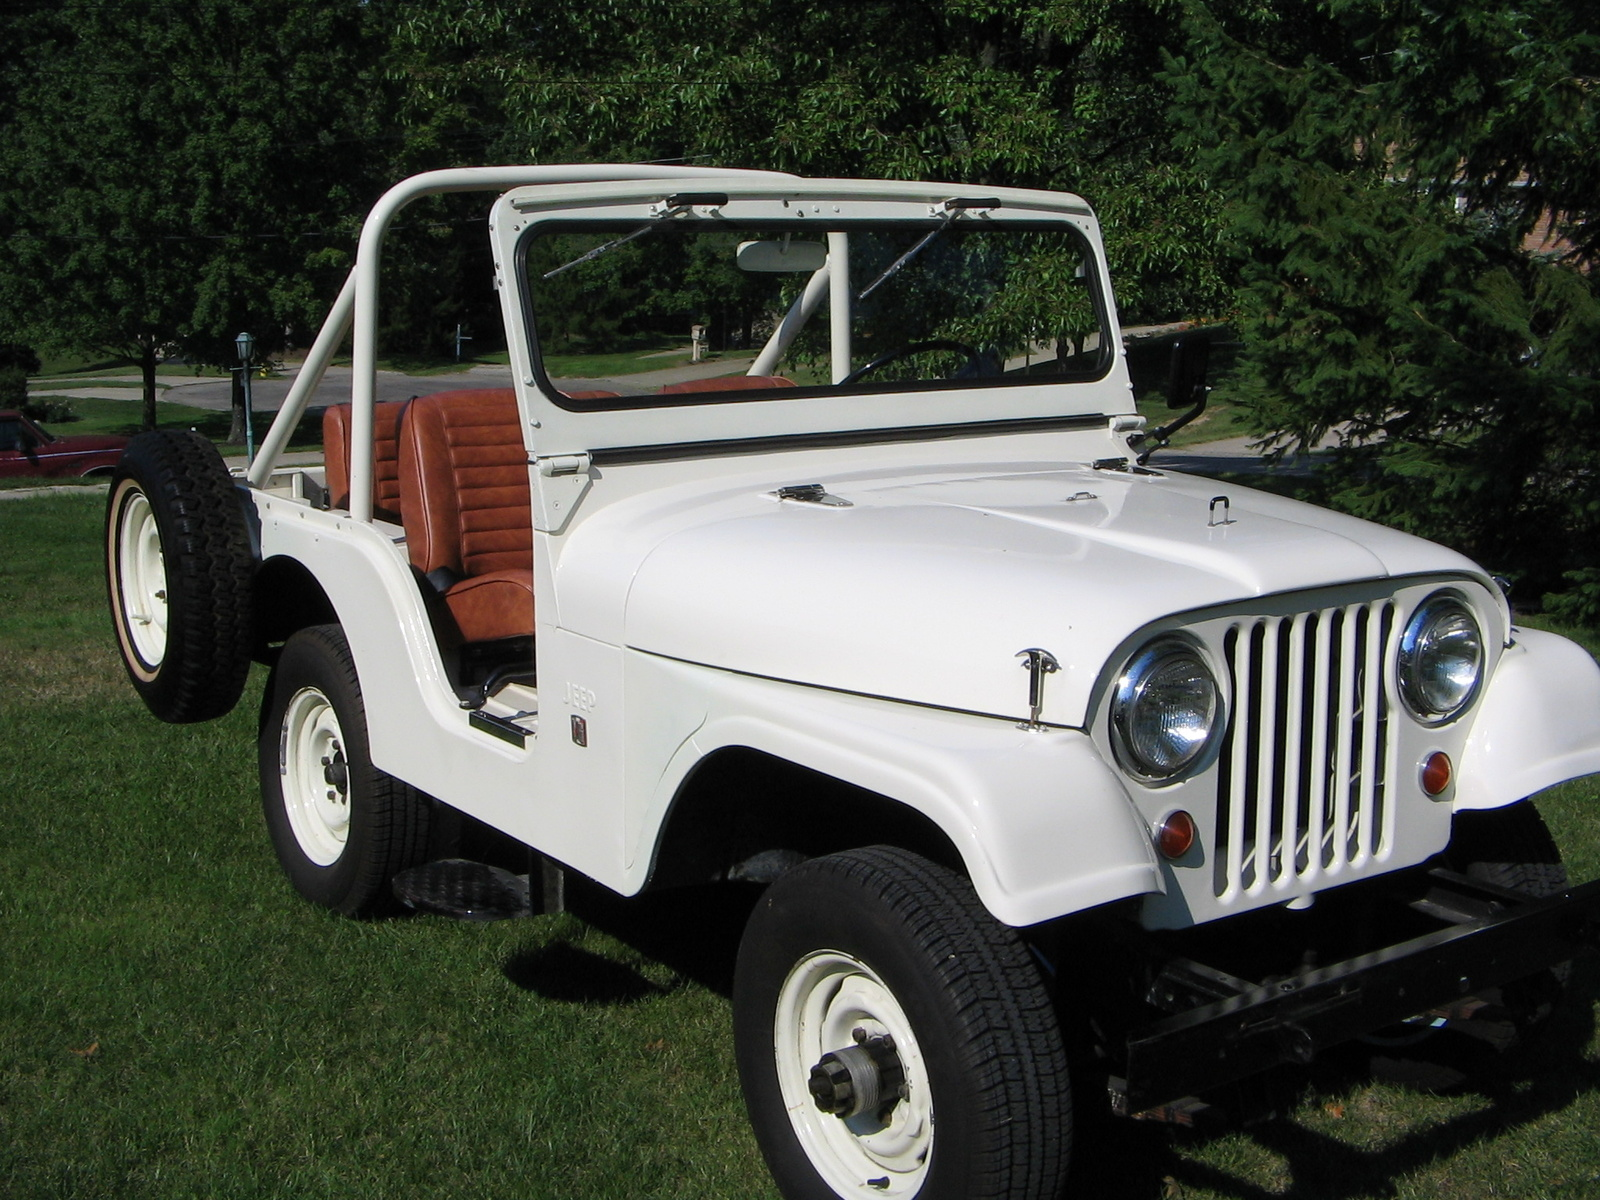 1967 jeep cj5 - pictures